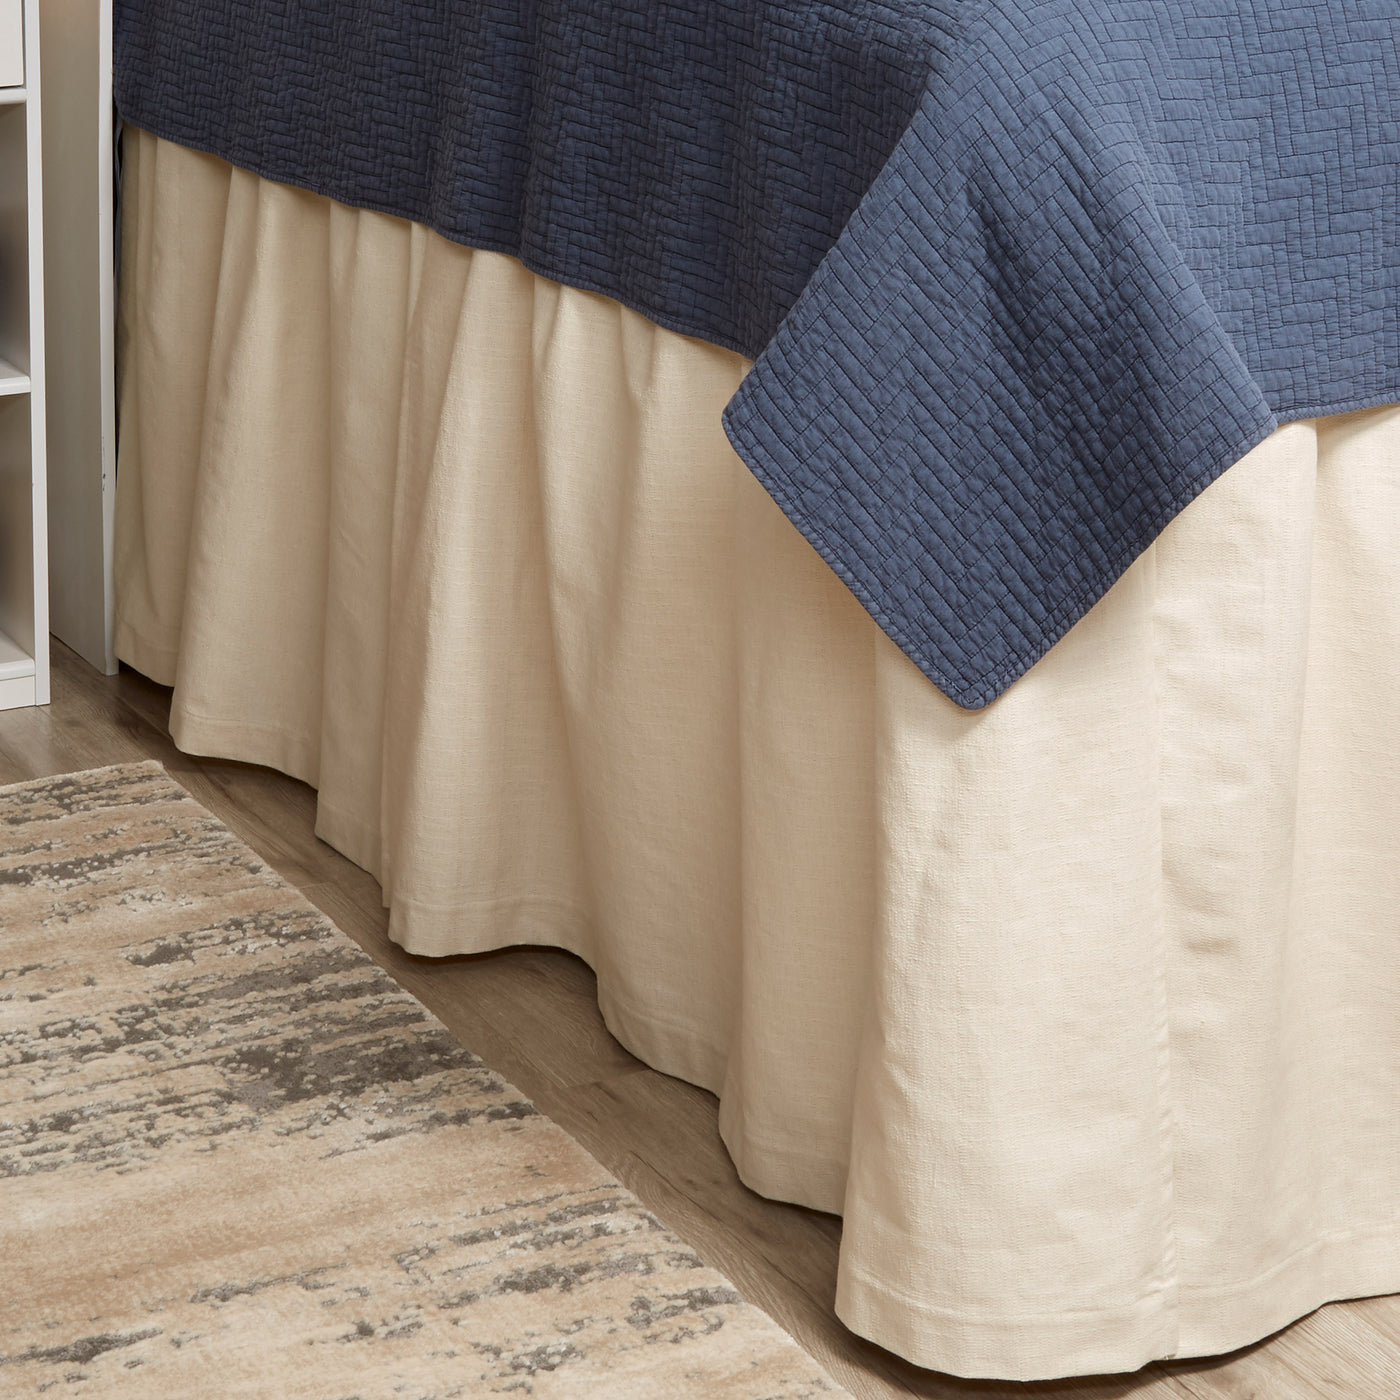 University Line Bed Skirt Panels